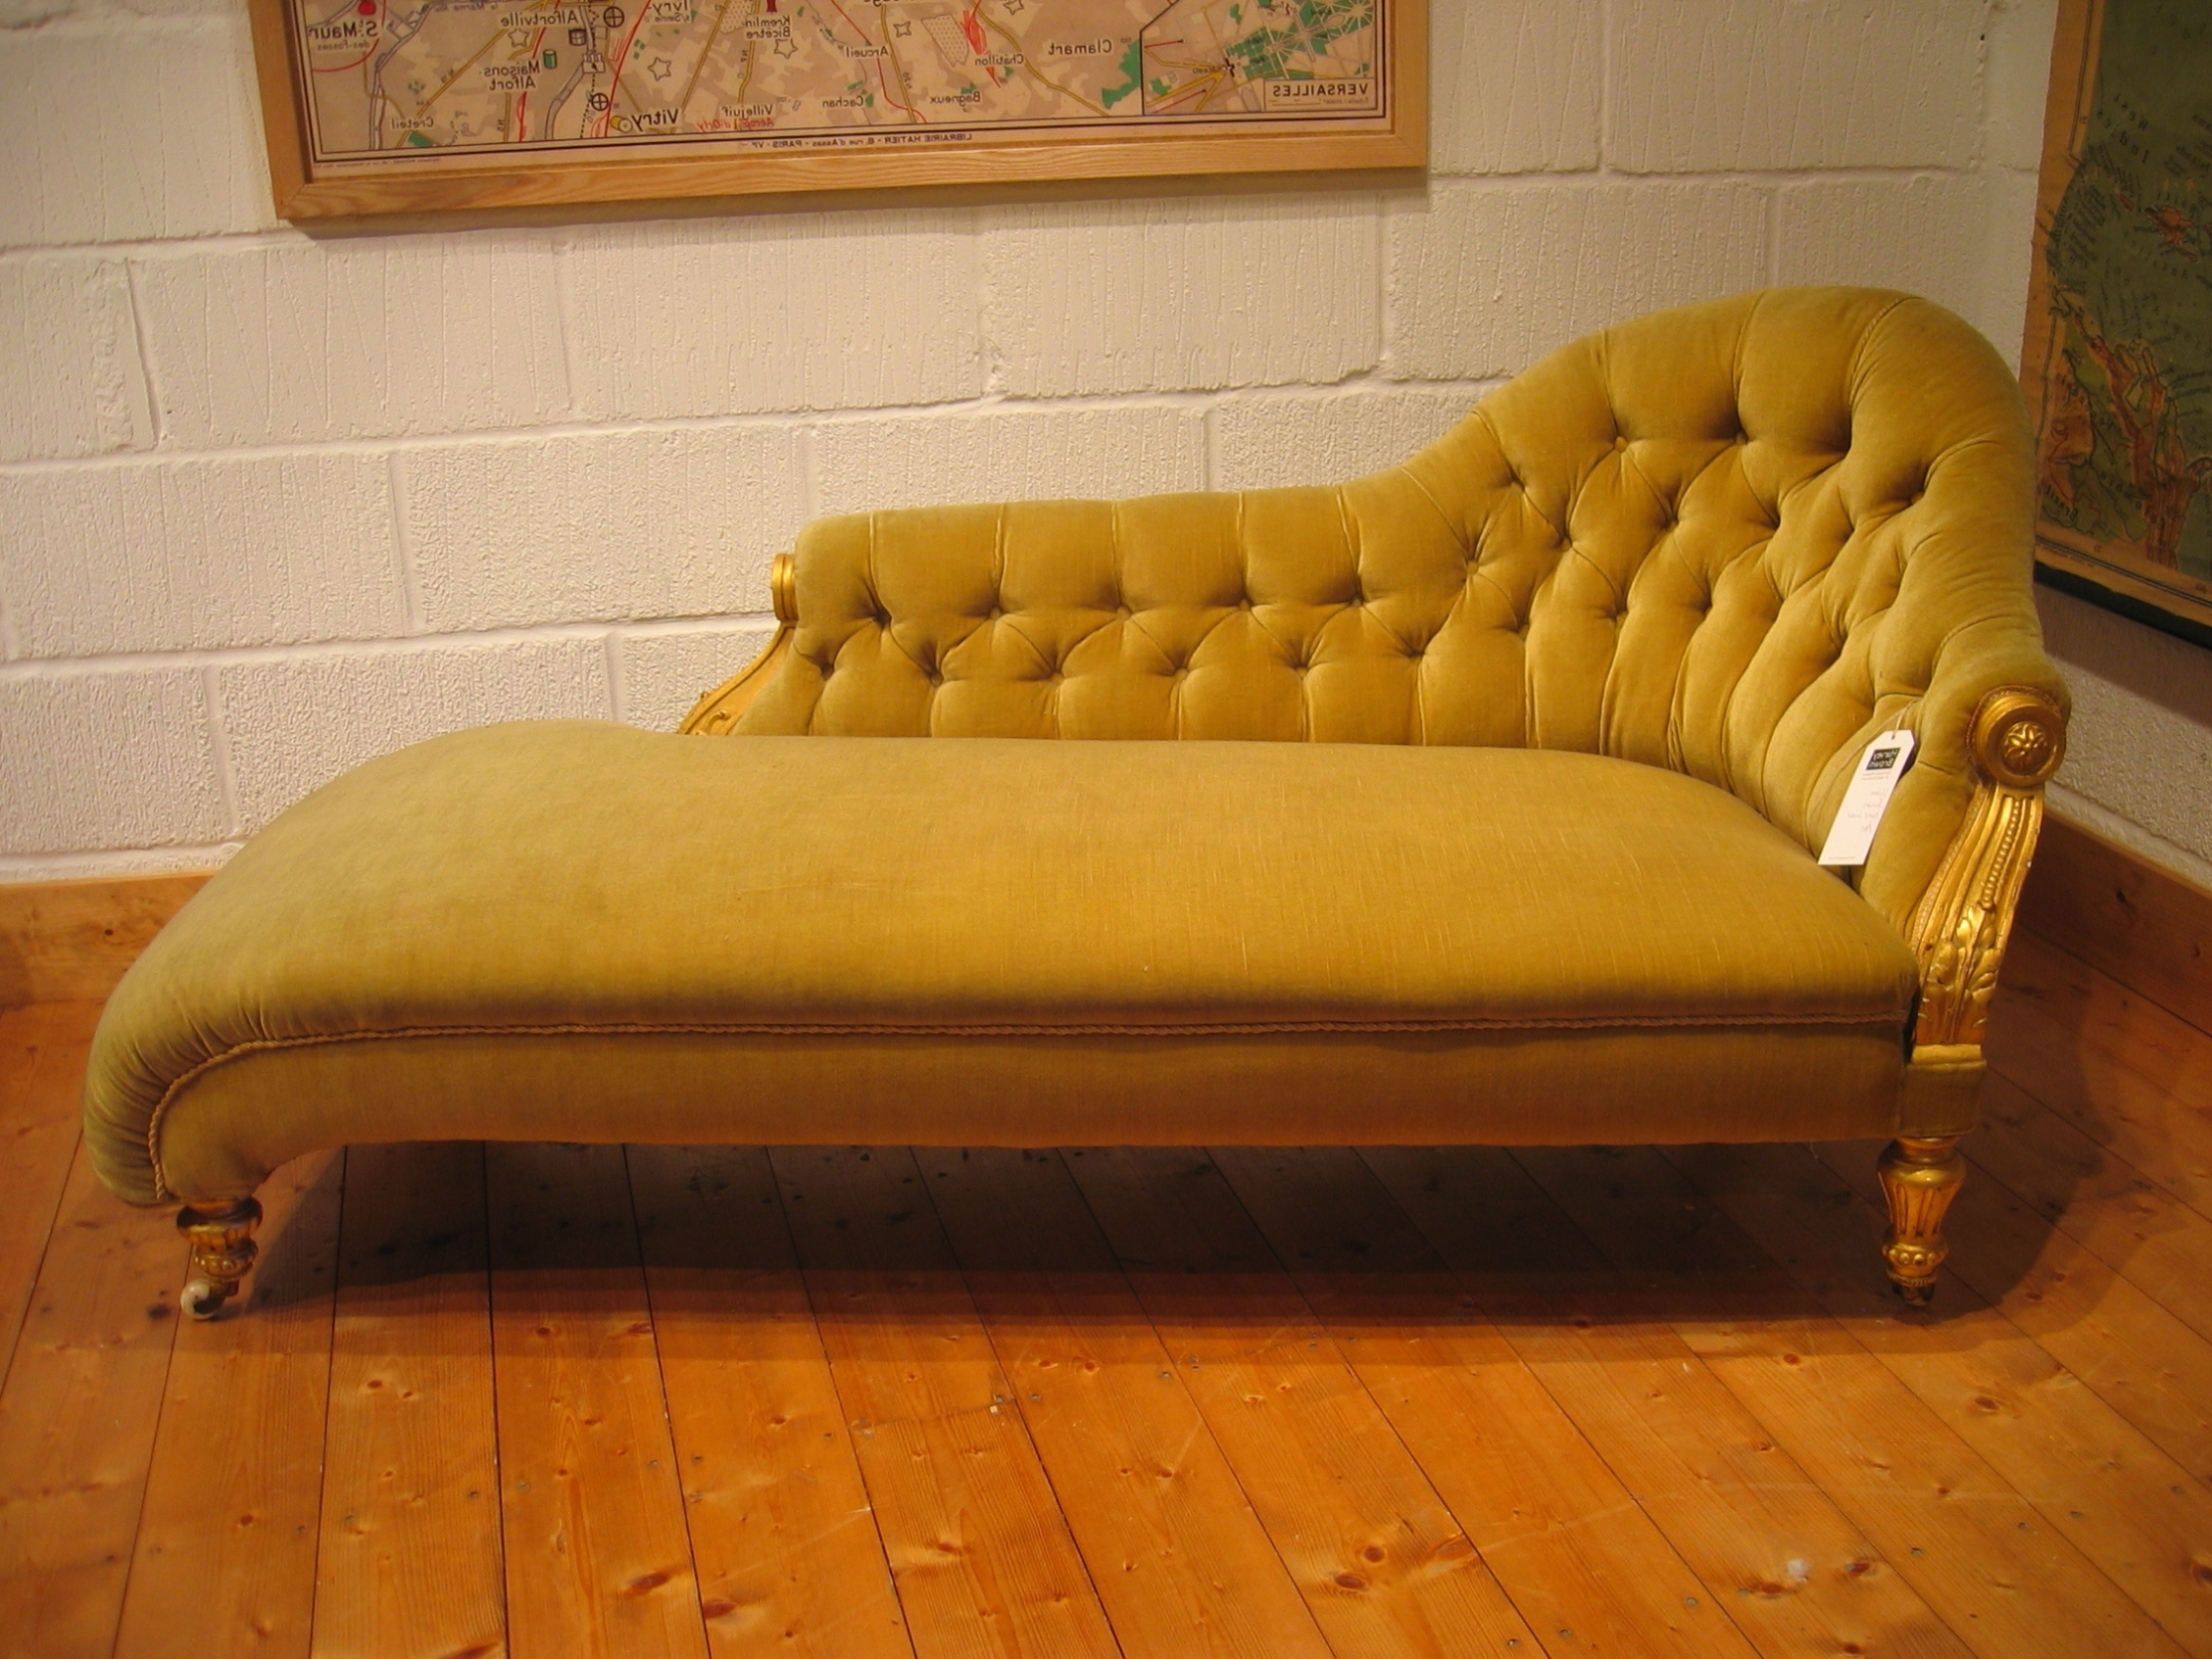 Most Recently Released Home Decor: Yellow Color Antique Victorian Chaise Lounge Sofa Bed Pertaining To Vintage Indoor Chaise Lounge Chairs (View 9 of 15)